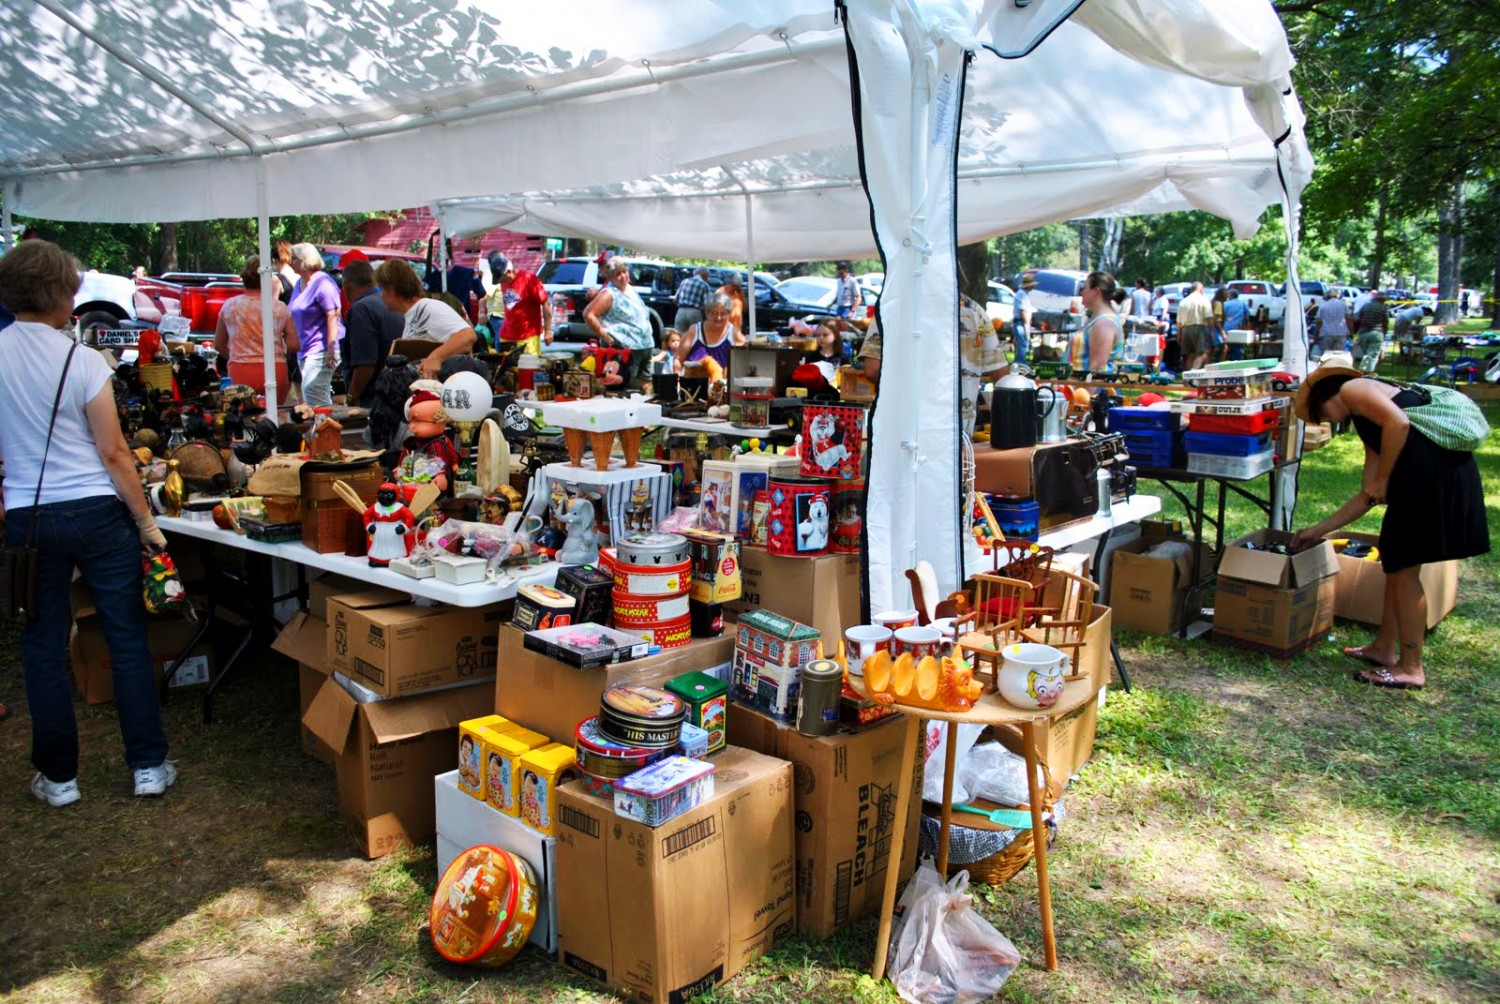 The 200 mile yard sale owensboro living for Outdoor tools for sale